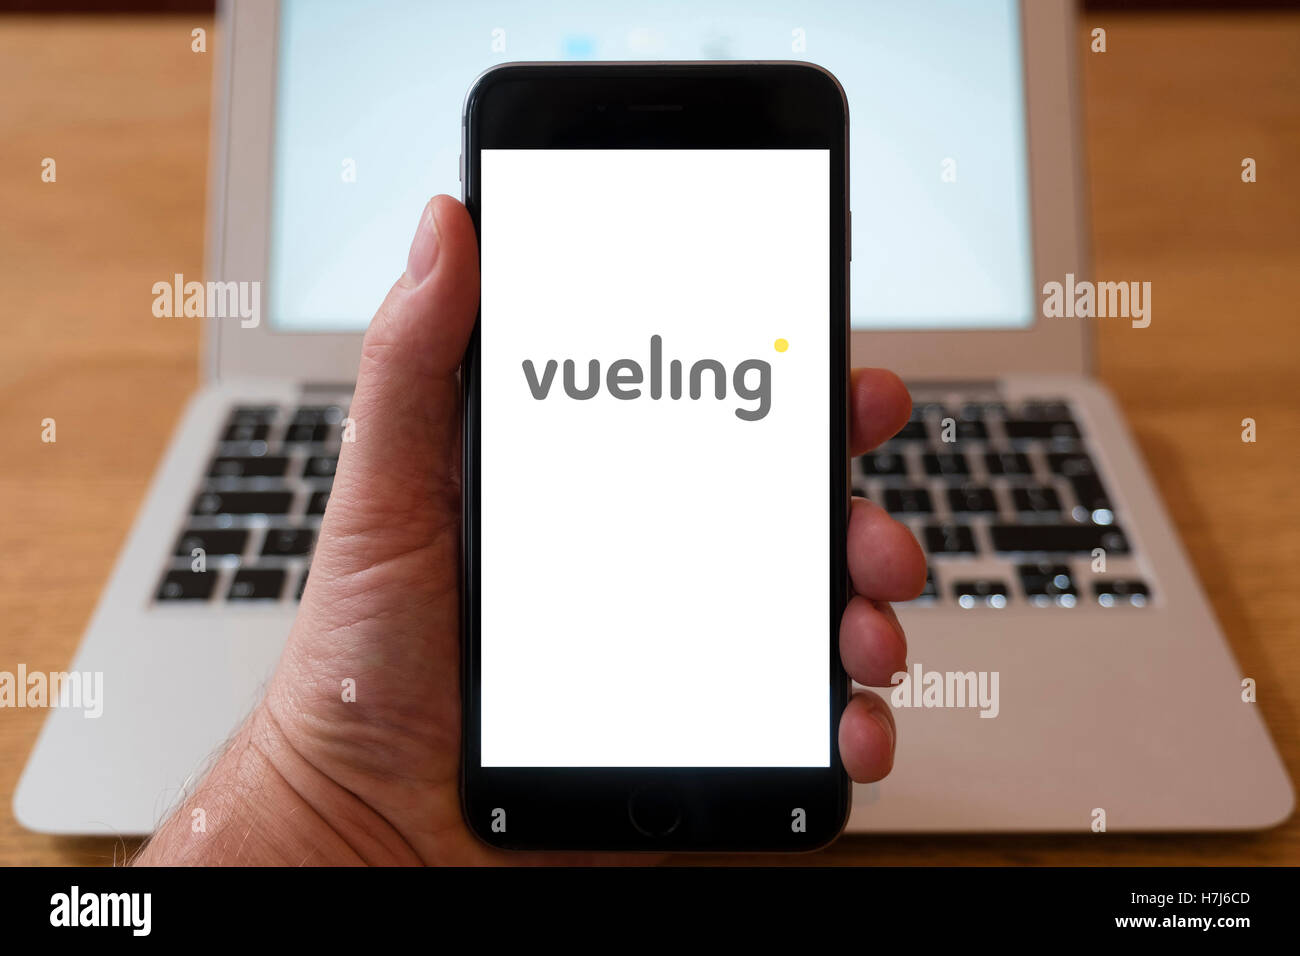 Using iPhone smart phone to display logo of Vueling, Spanish low-cost airline - Stock Image